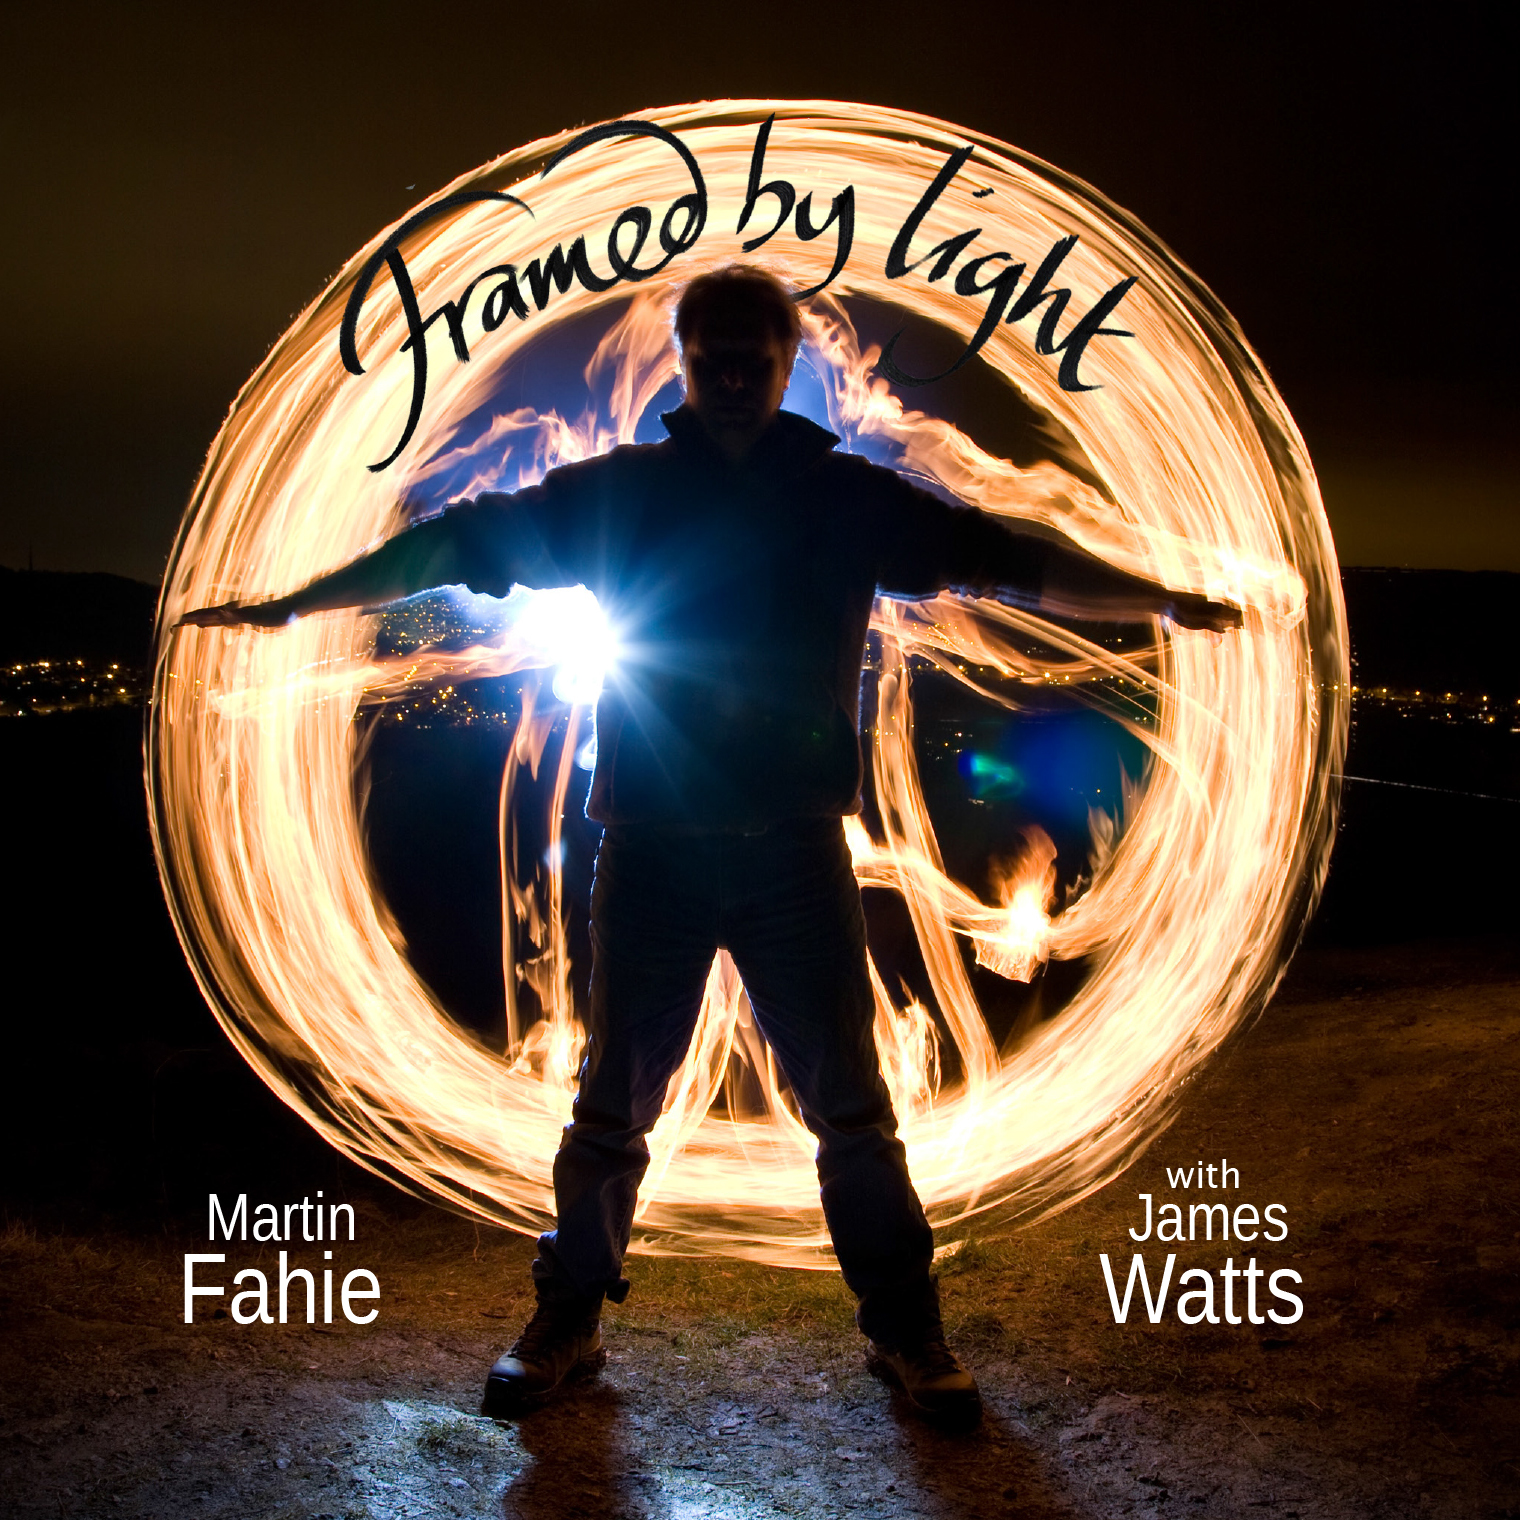 Artist:  Martin Fahie   Title:  Framed By Light   Credit:  Recording, Mixing, Mastering   Year:  2013